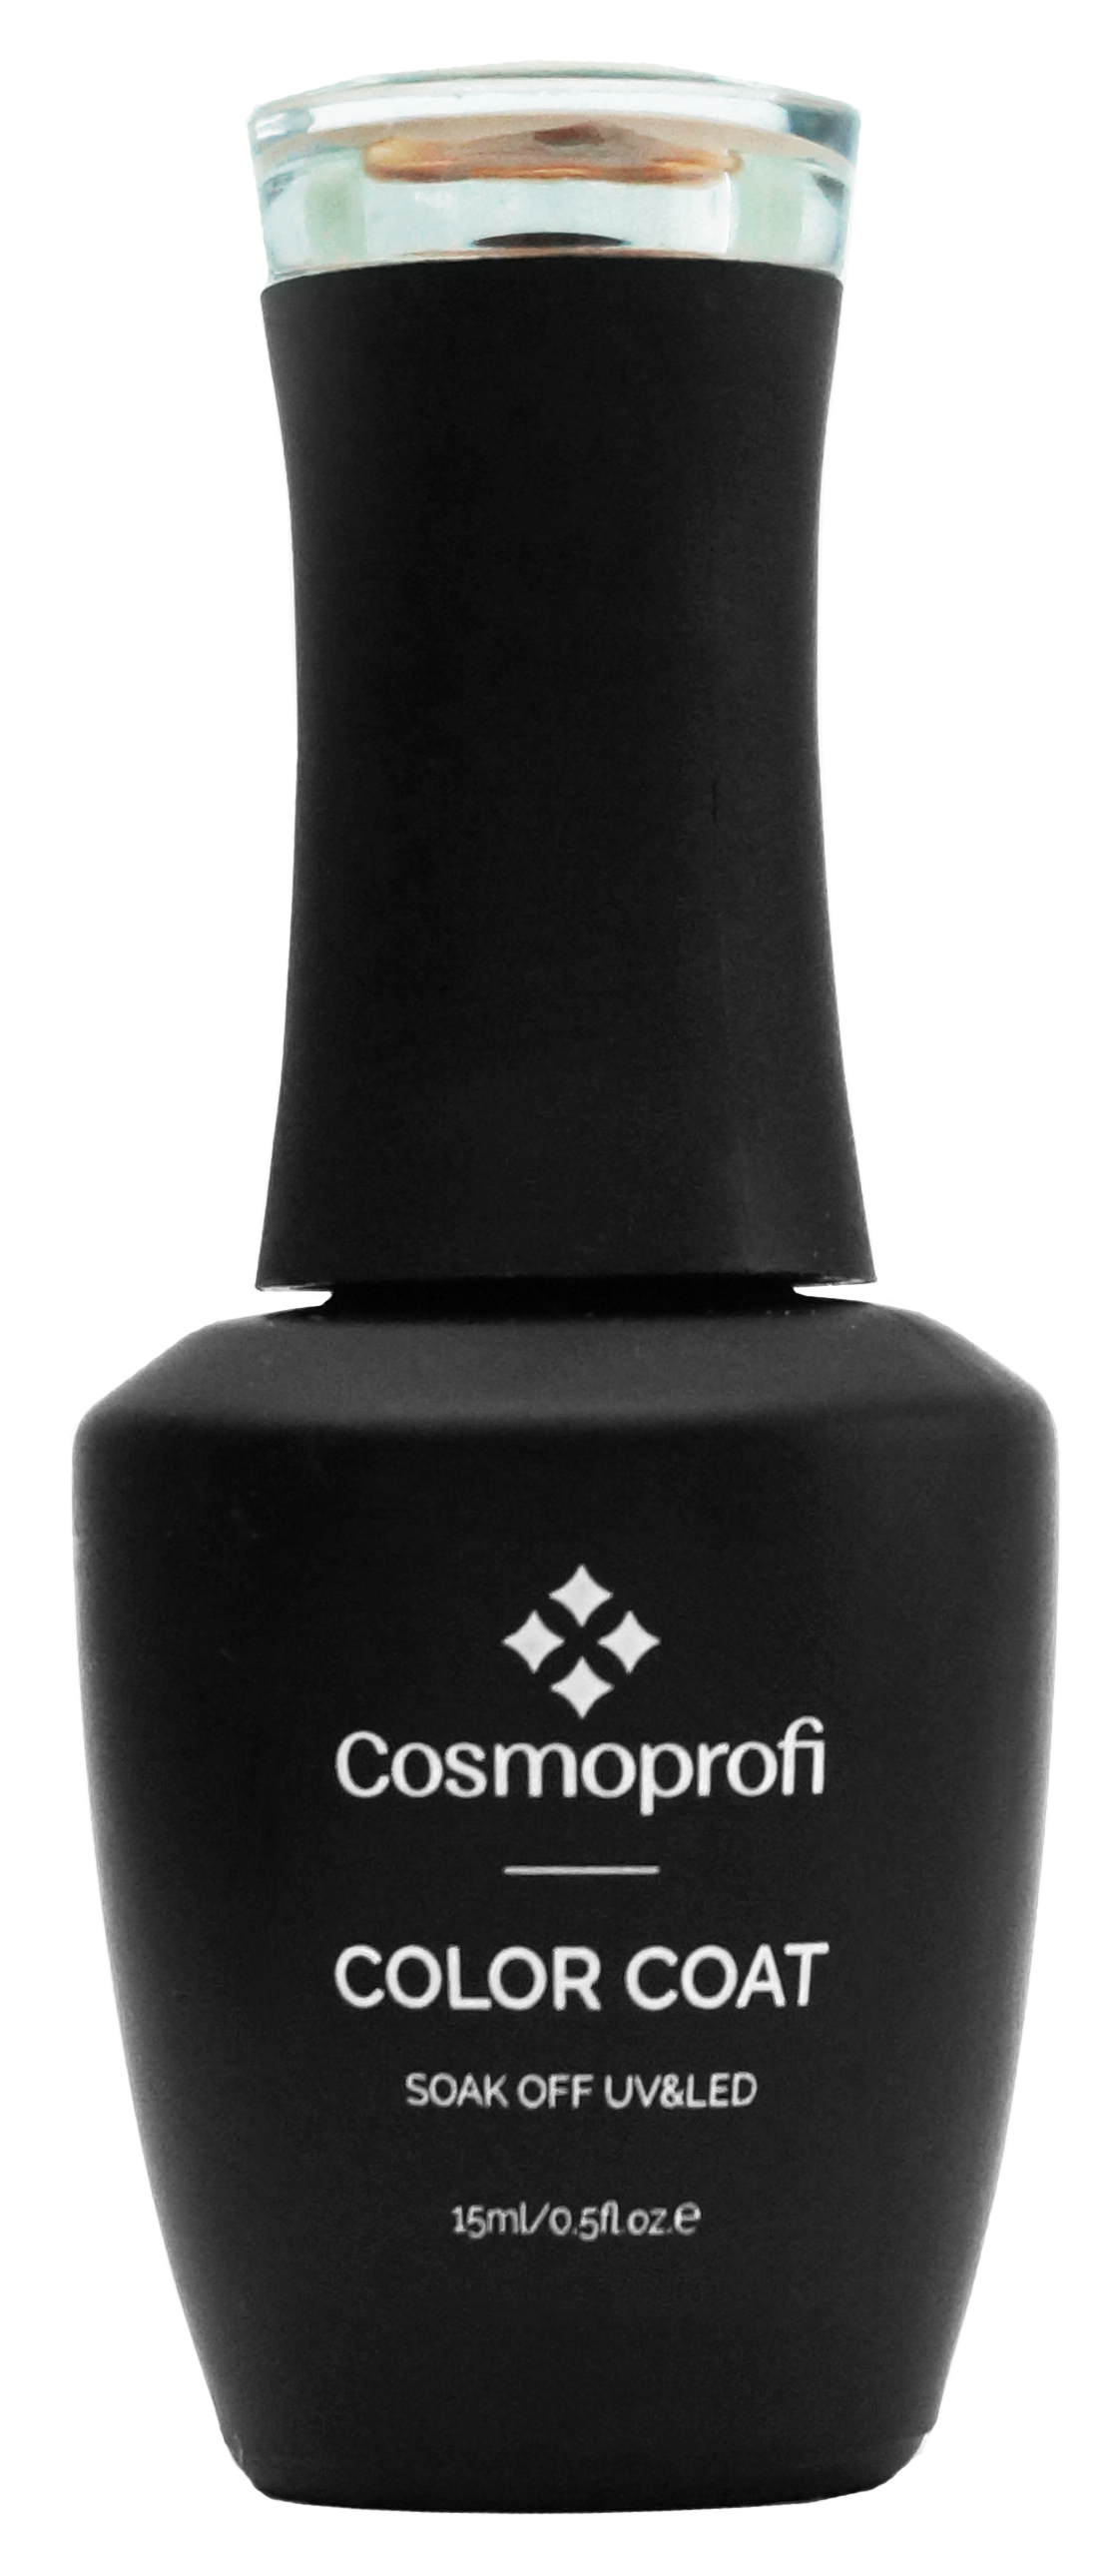 Гель-лак Cosmoprofi, Color coat № 216, 15 мл